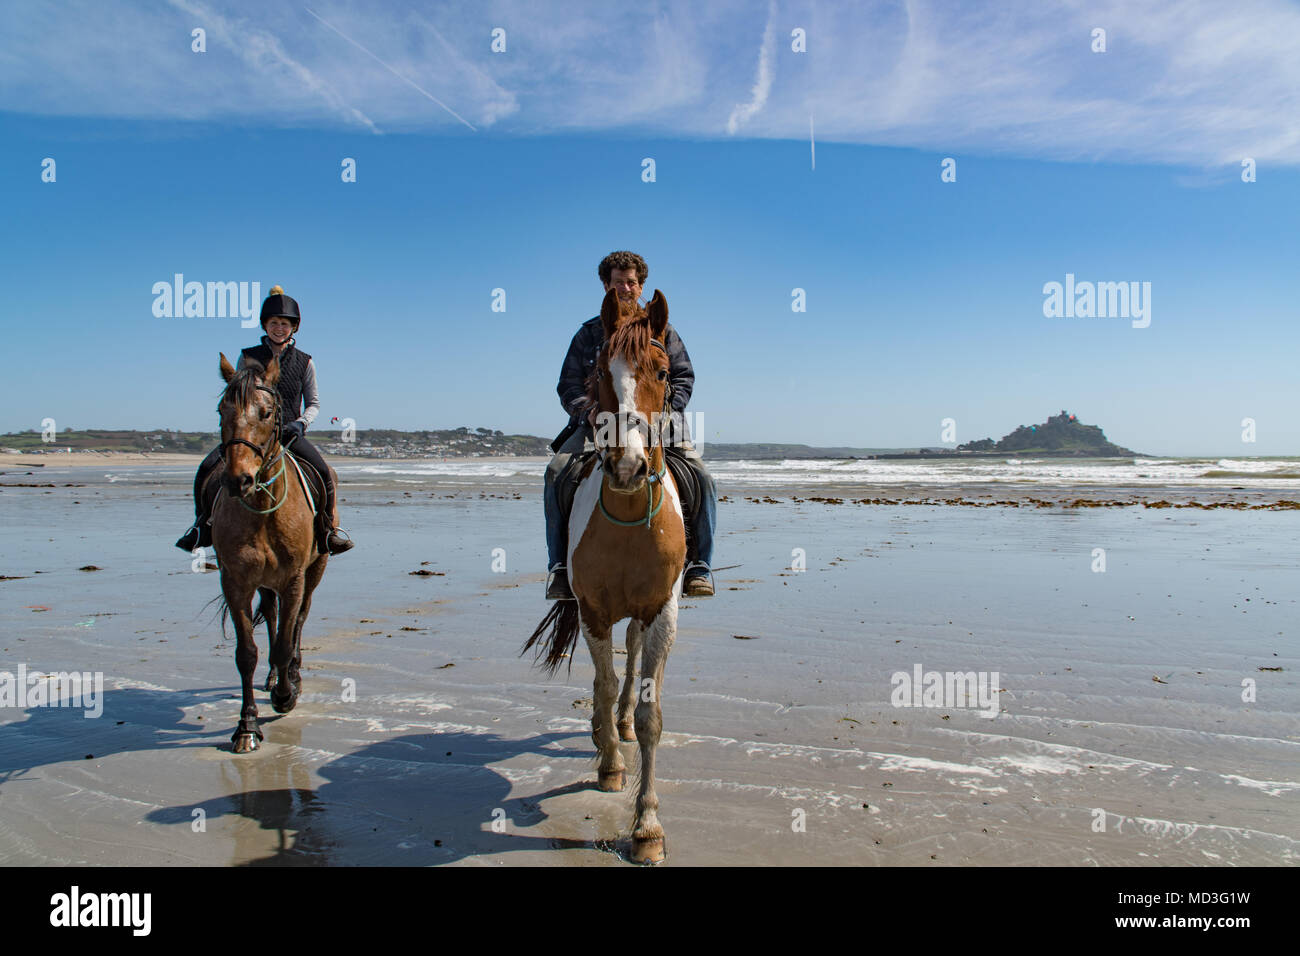 Longrock, near Marazion, Cornwall, UK. 18th April 2018. UK Weather. A stiff onshore breeze kept the temperatures down to 19 degrees C this lunchtime on the beach at Longrock. Cornwall swimming horses were out for a canter, however they won't be swimming until the sea warms up a bit more in May. Credit: Simon Maycock/Alamy Live News - Stock Image